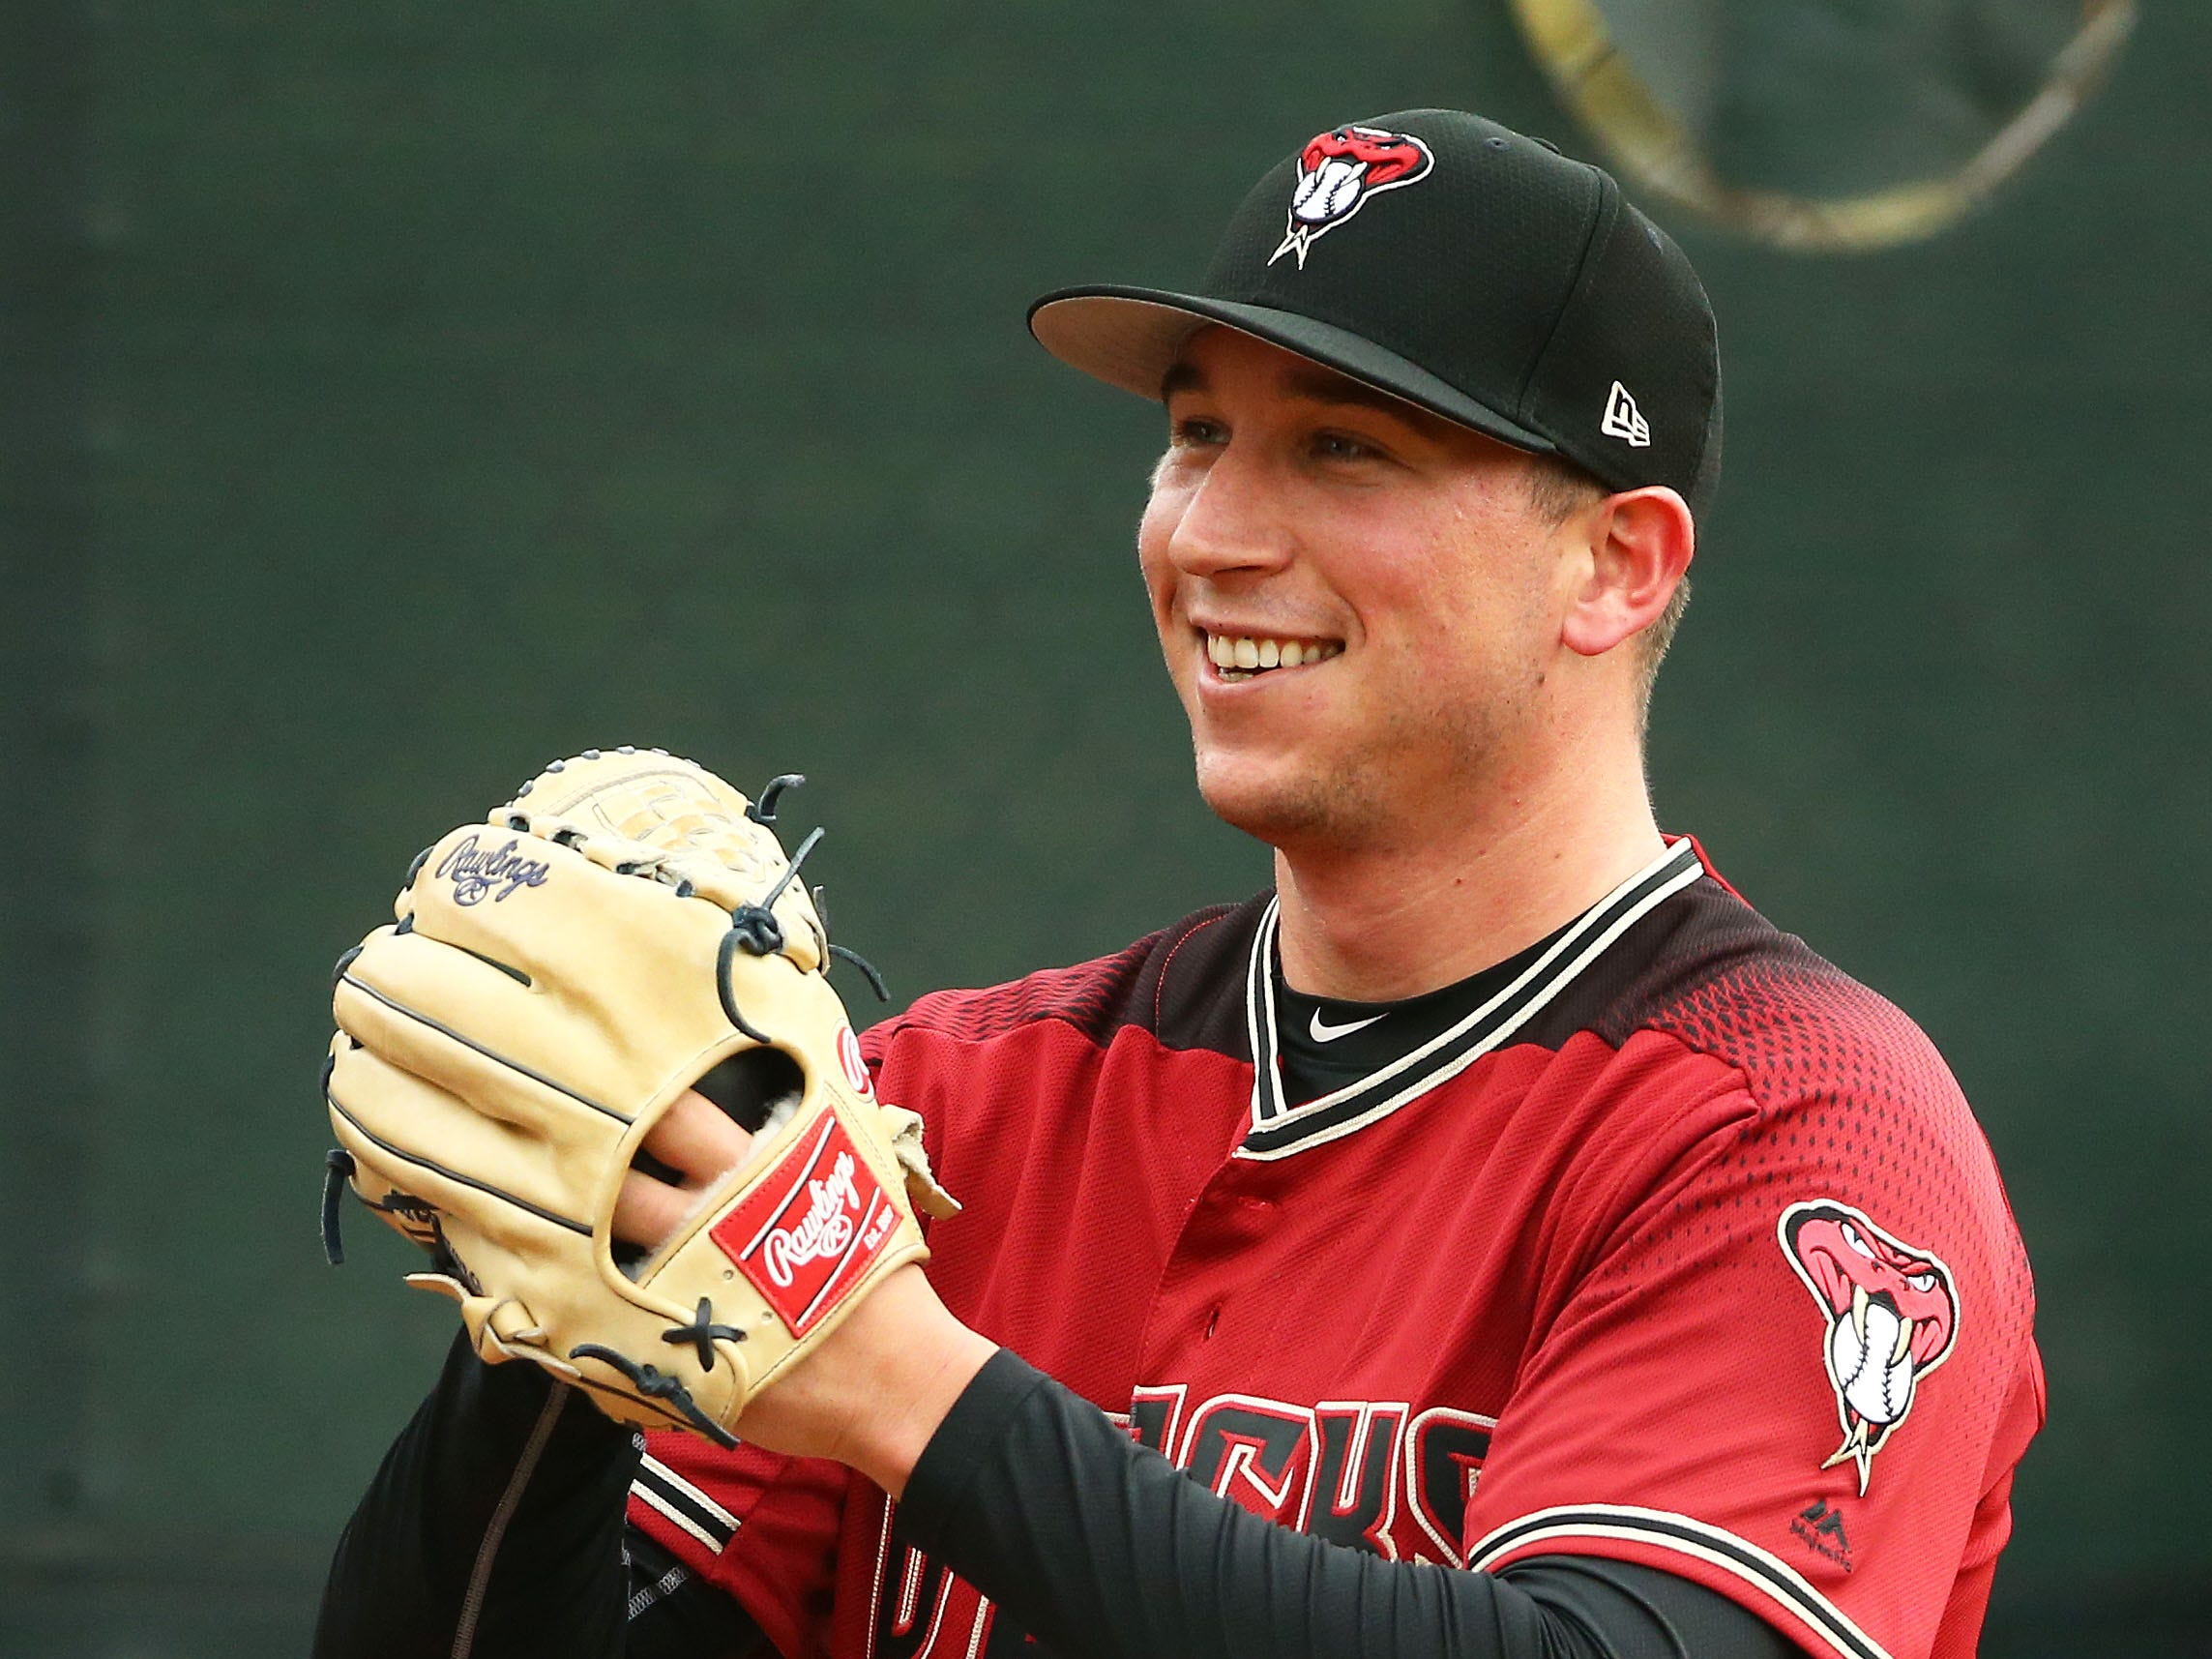 Arizona Diamondbacks pitcher Taylor Widener during the first day of spring training workouts on Feb. 13 at Salt River Fields in Scottsdale.